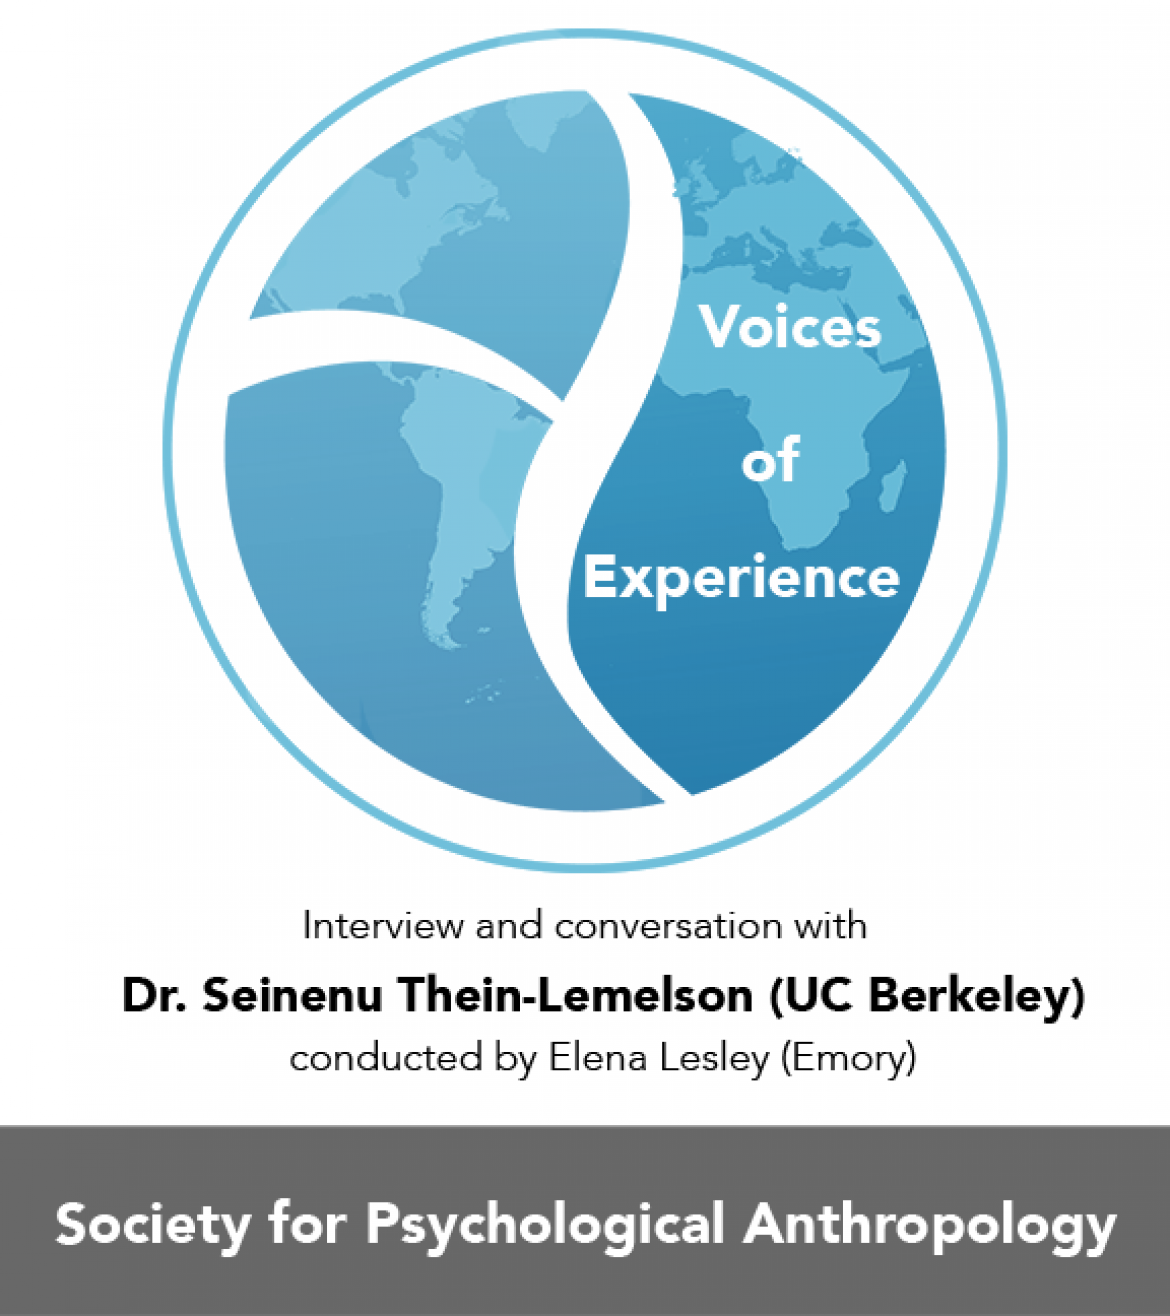 Voices of Experience: Dr. Seinenu Thein-Lemelson